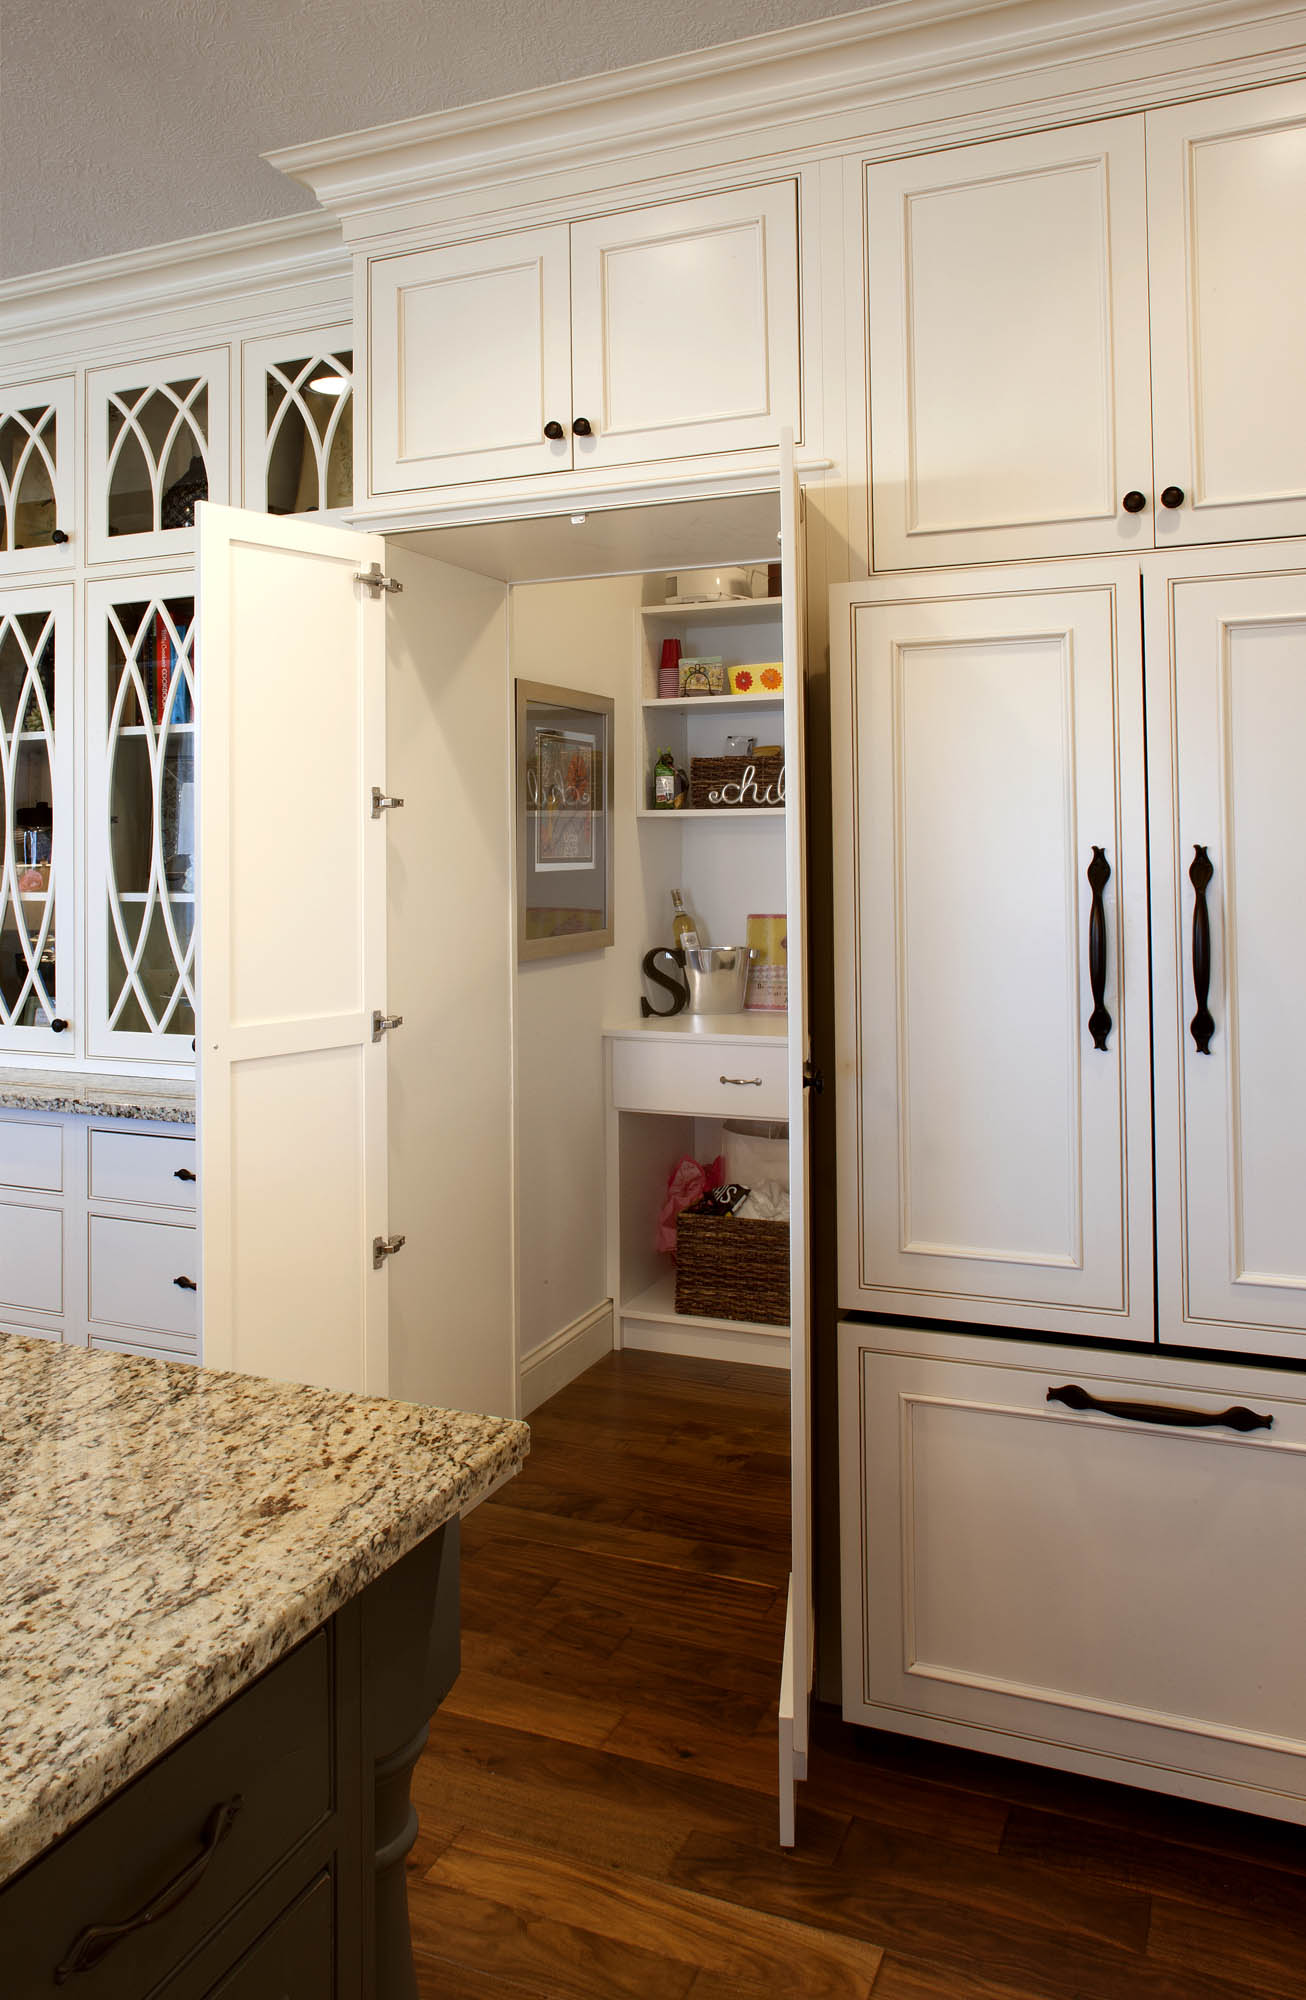 Painted kitchen pantry in Soft Cream with Oatmeal Glaze by Showplace Cabinetry